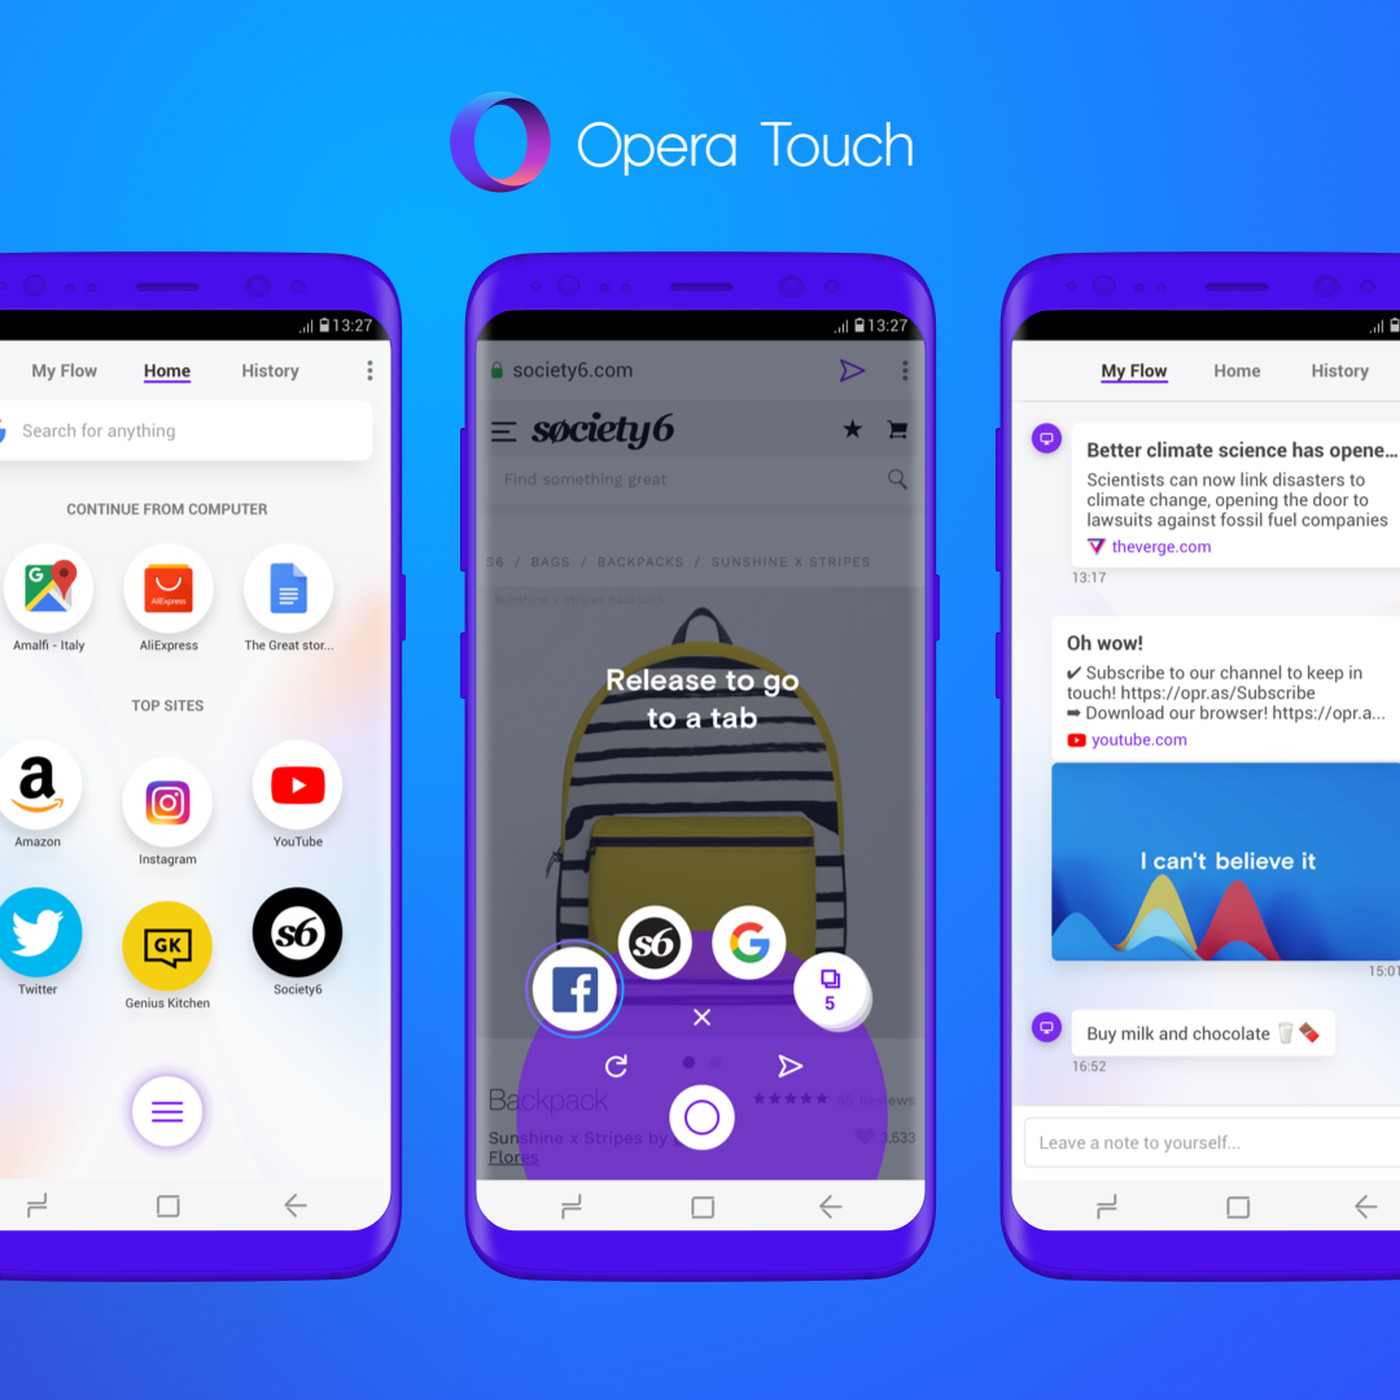 Opera Touch is a new Android browser tailored for one-handed